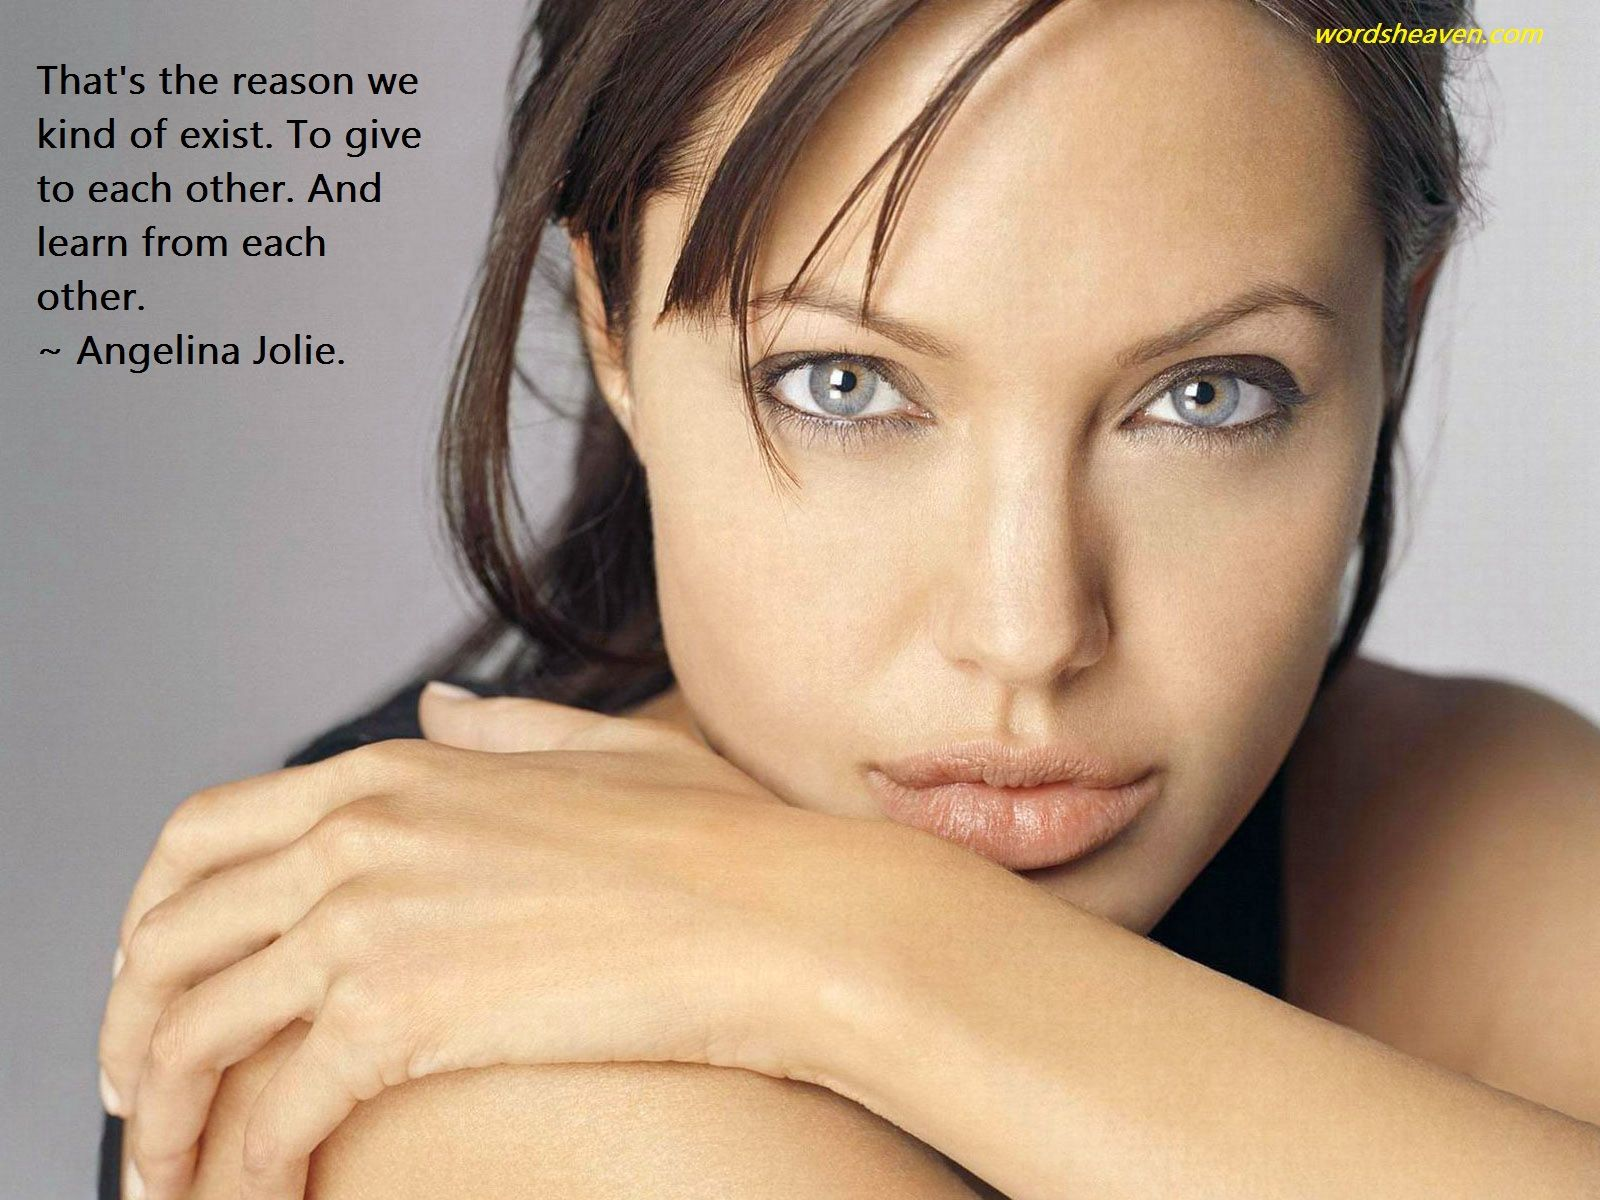 20 wise quotes by beautiful Angelina Jolie